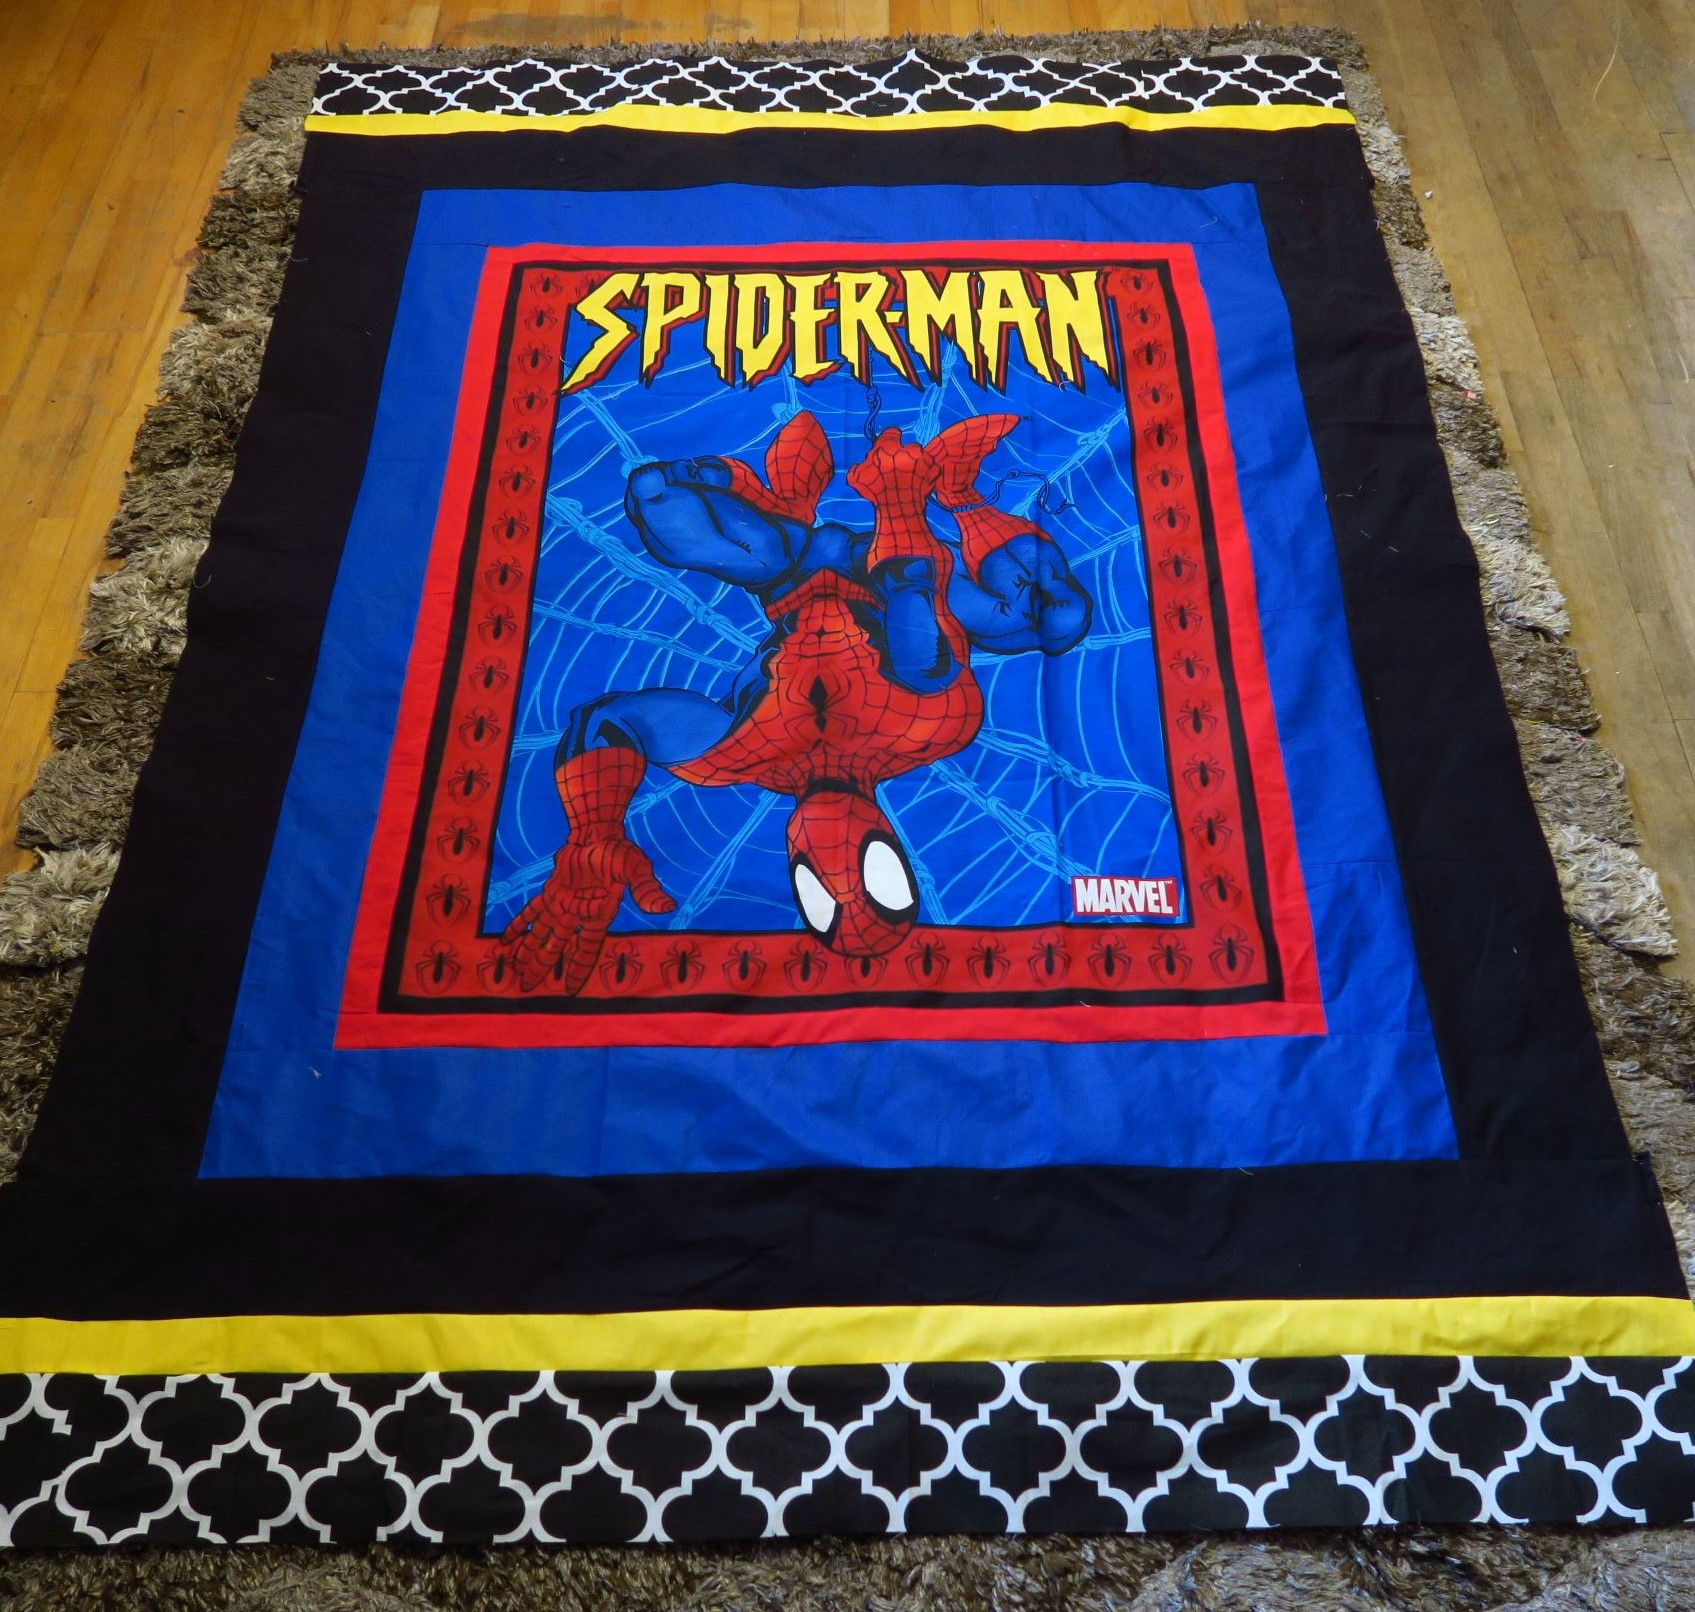 Spiderman panel. I added the borders. These ones will all go quickly. They are very popular.